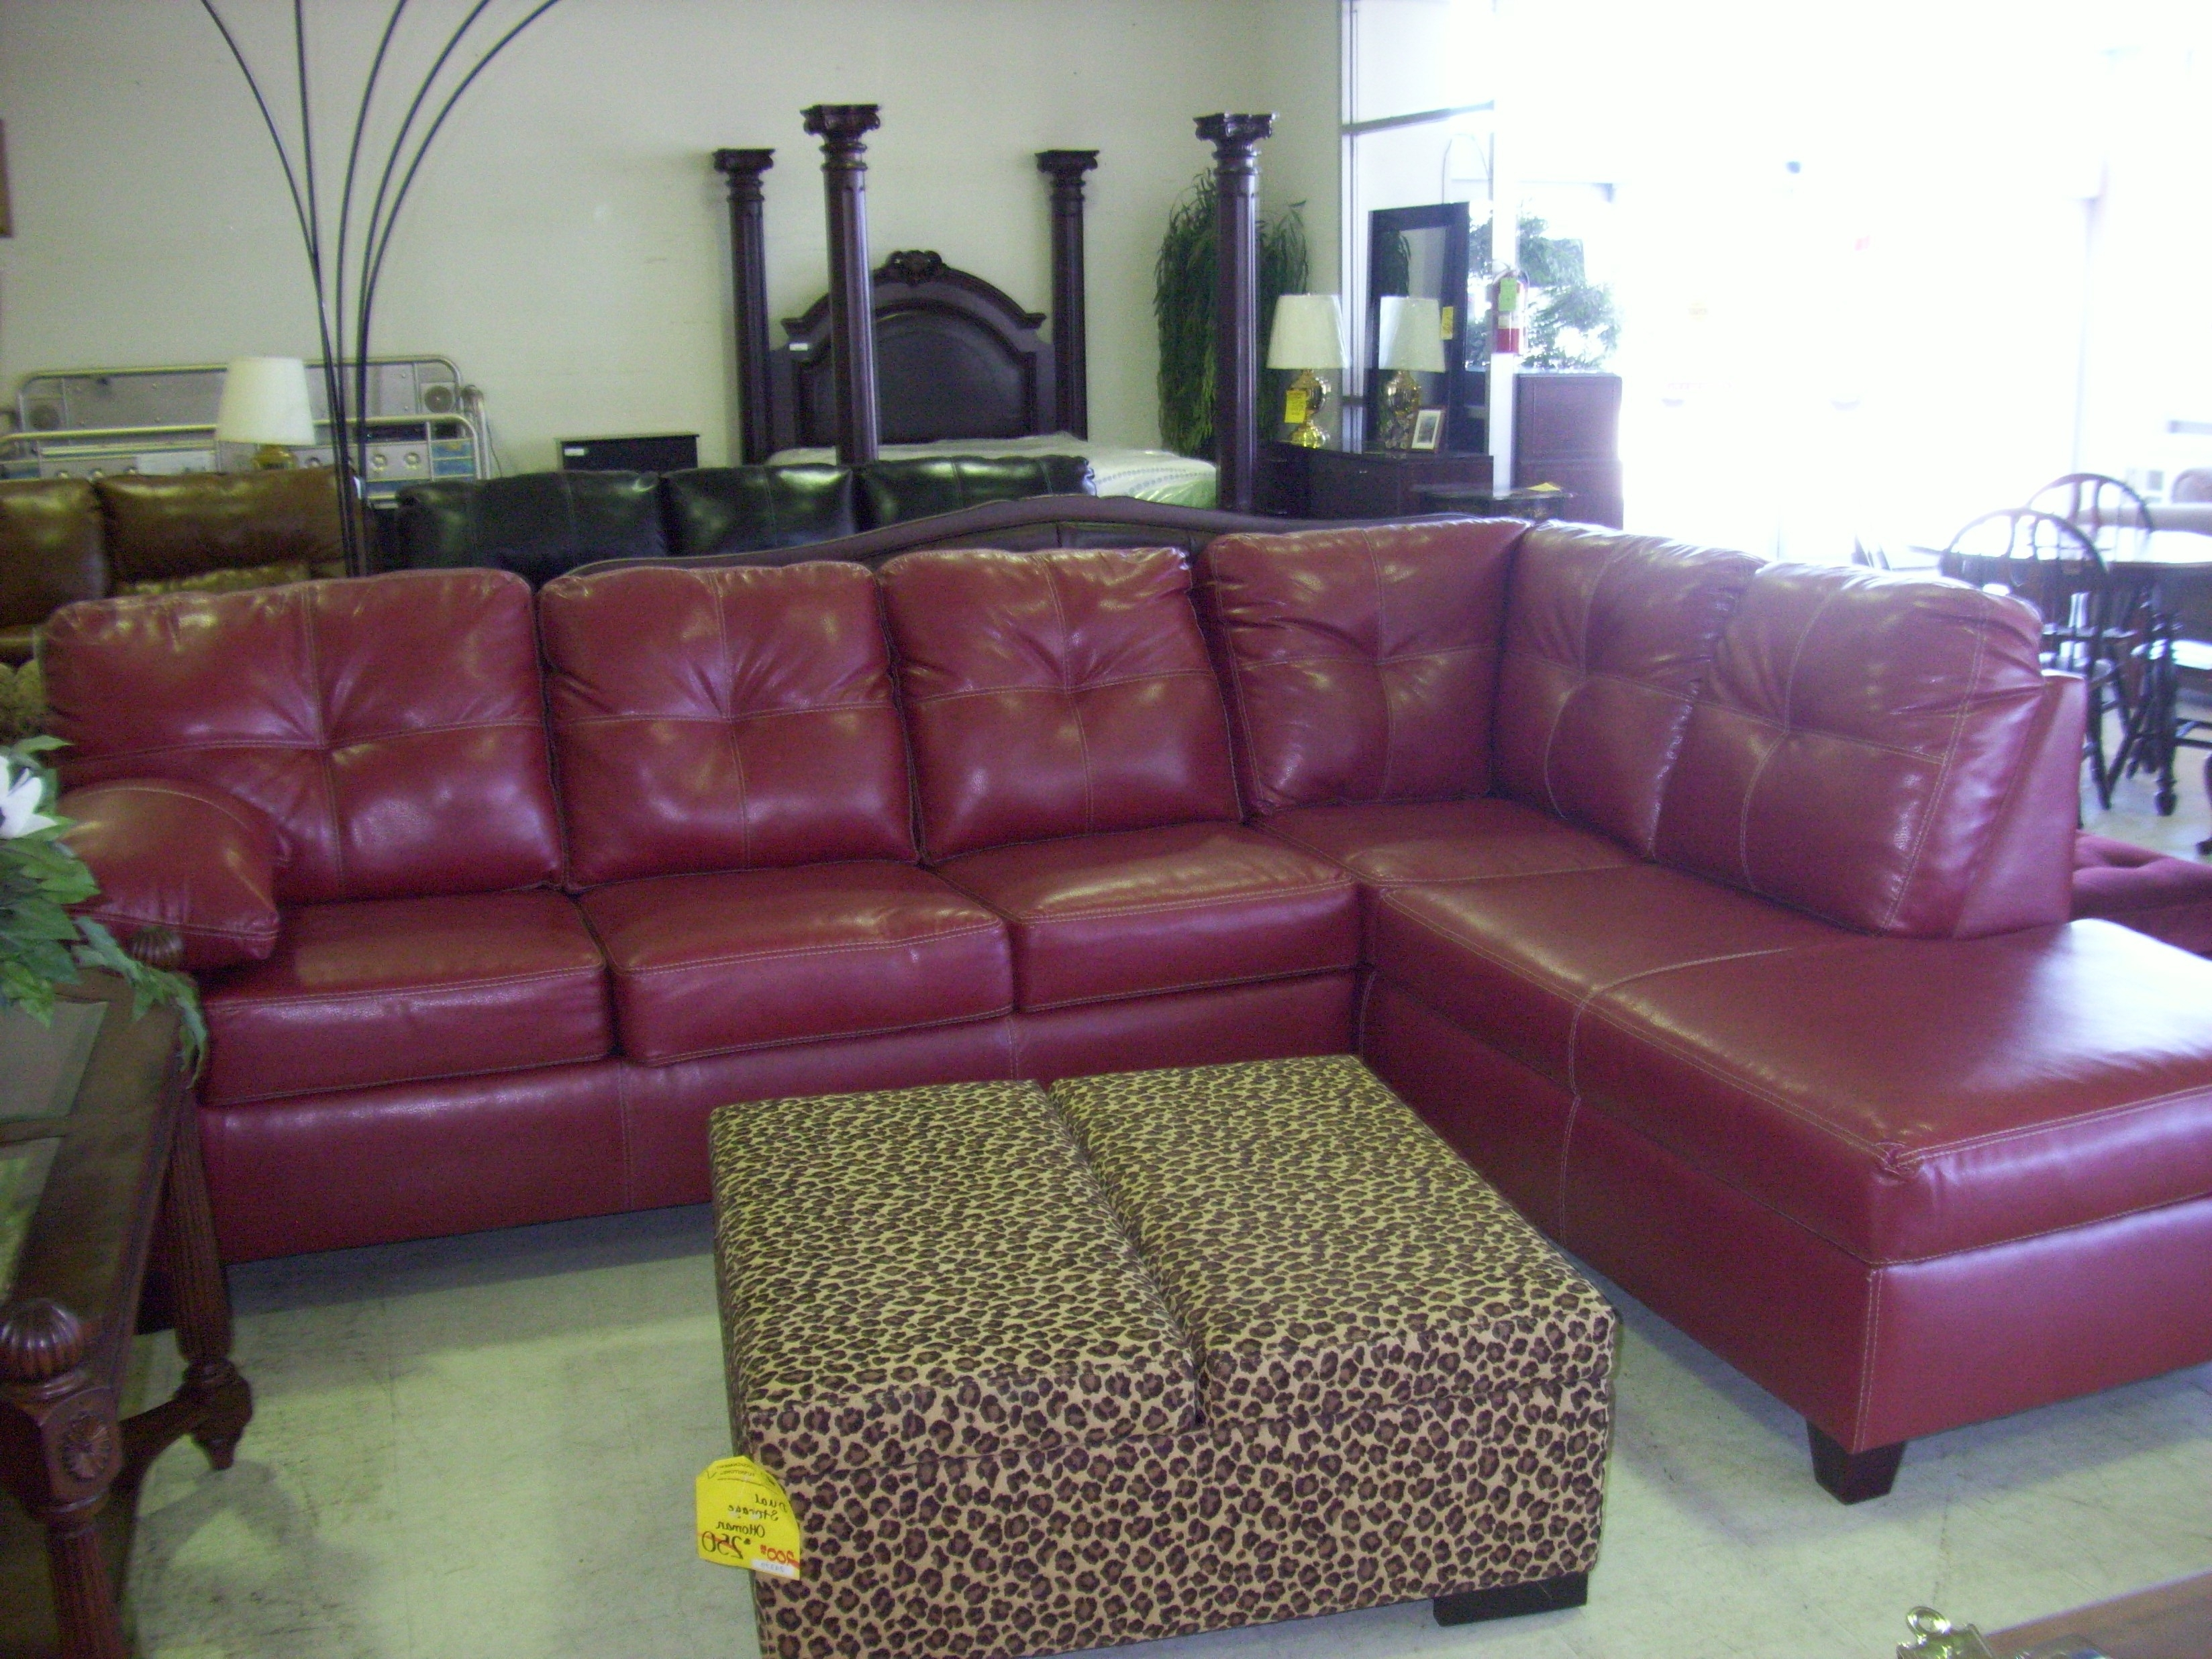 Red Leather Sectional Sofas With Recliners Intended For Latest Sofas : Leather Sectional Sofa U Shaped Couch Red Leather (View 10 of 15)